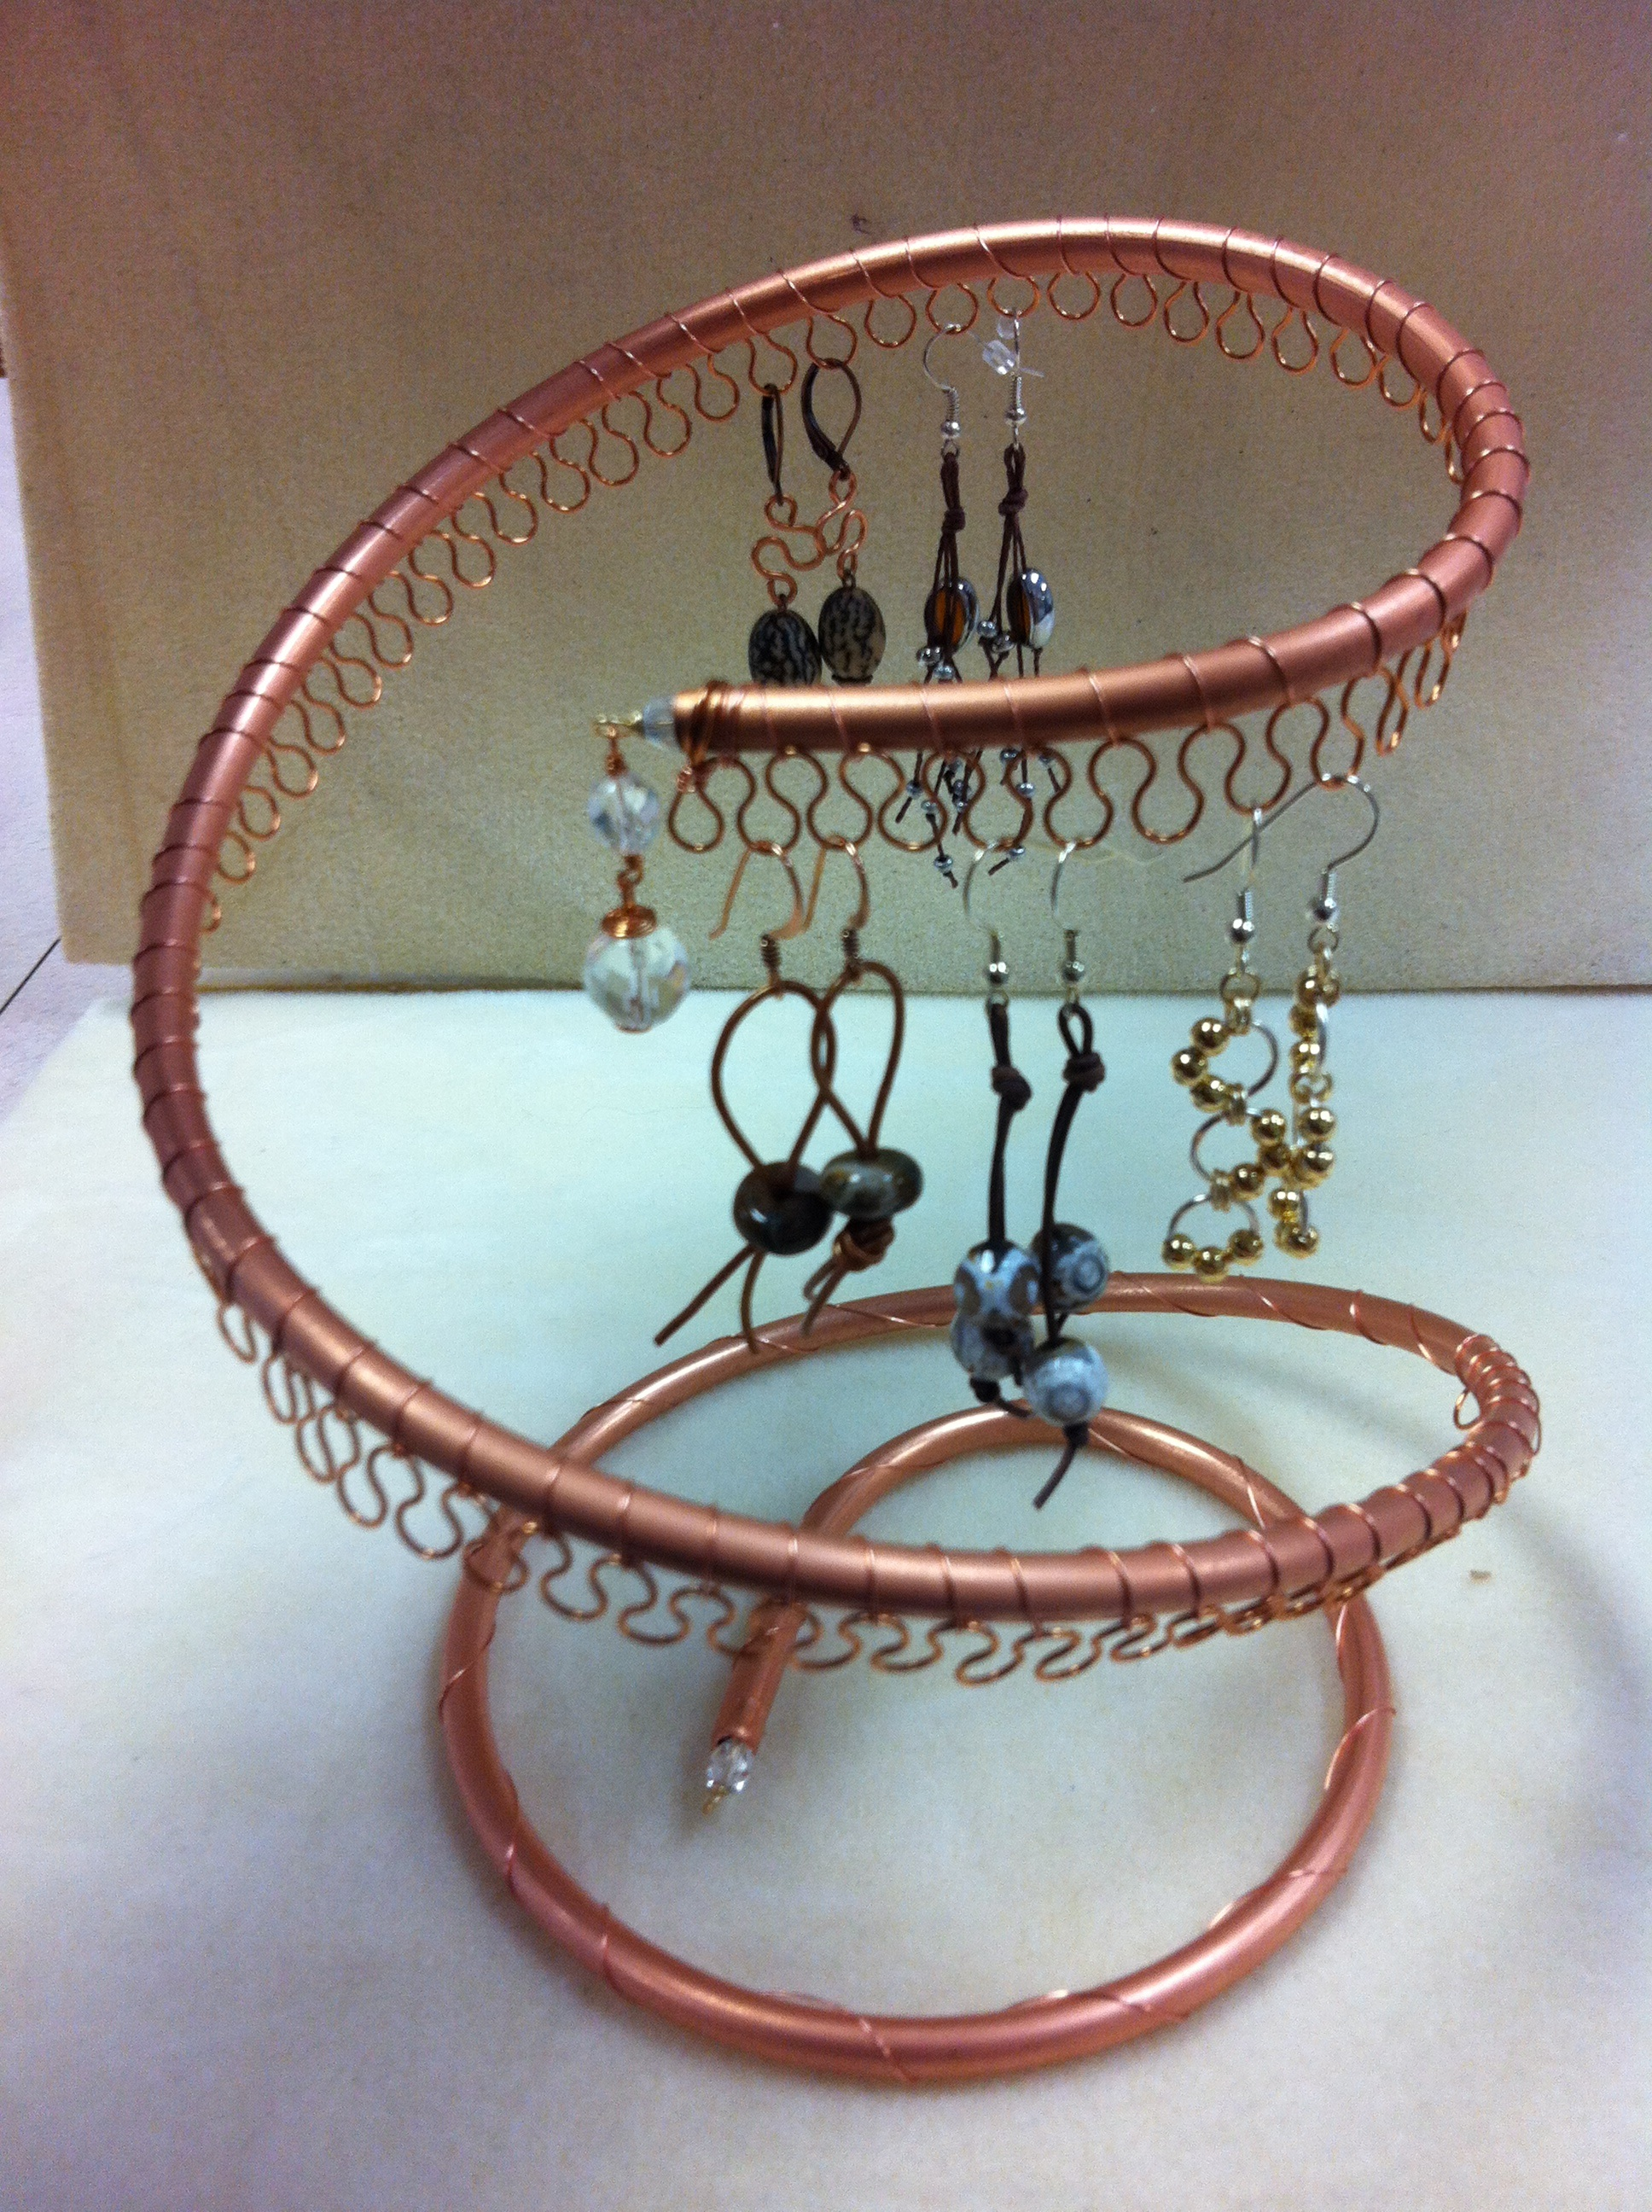 Spiral Copper Earring Tree Holder Organizer Holds Roximately 40pairs Of Earrings